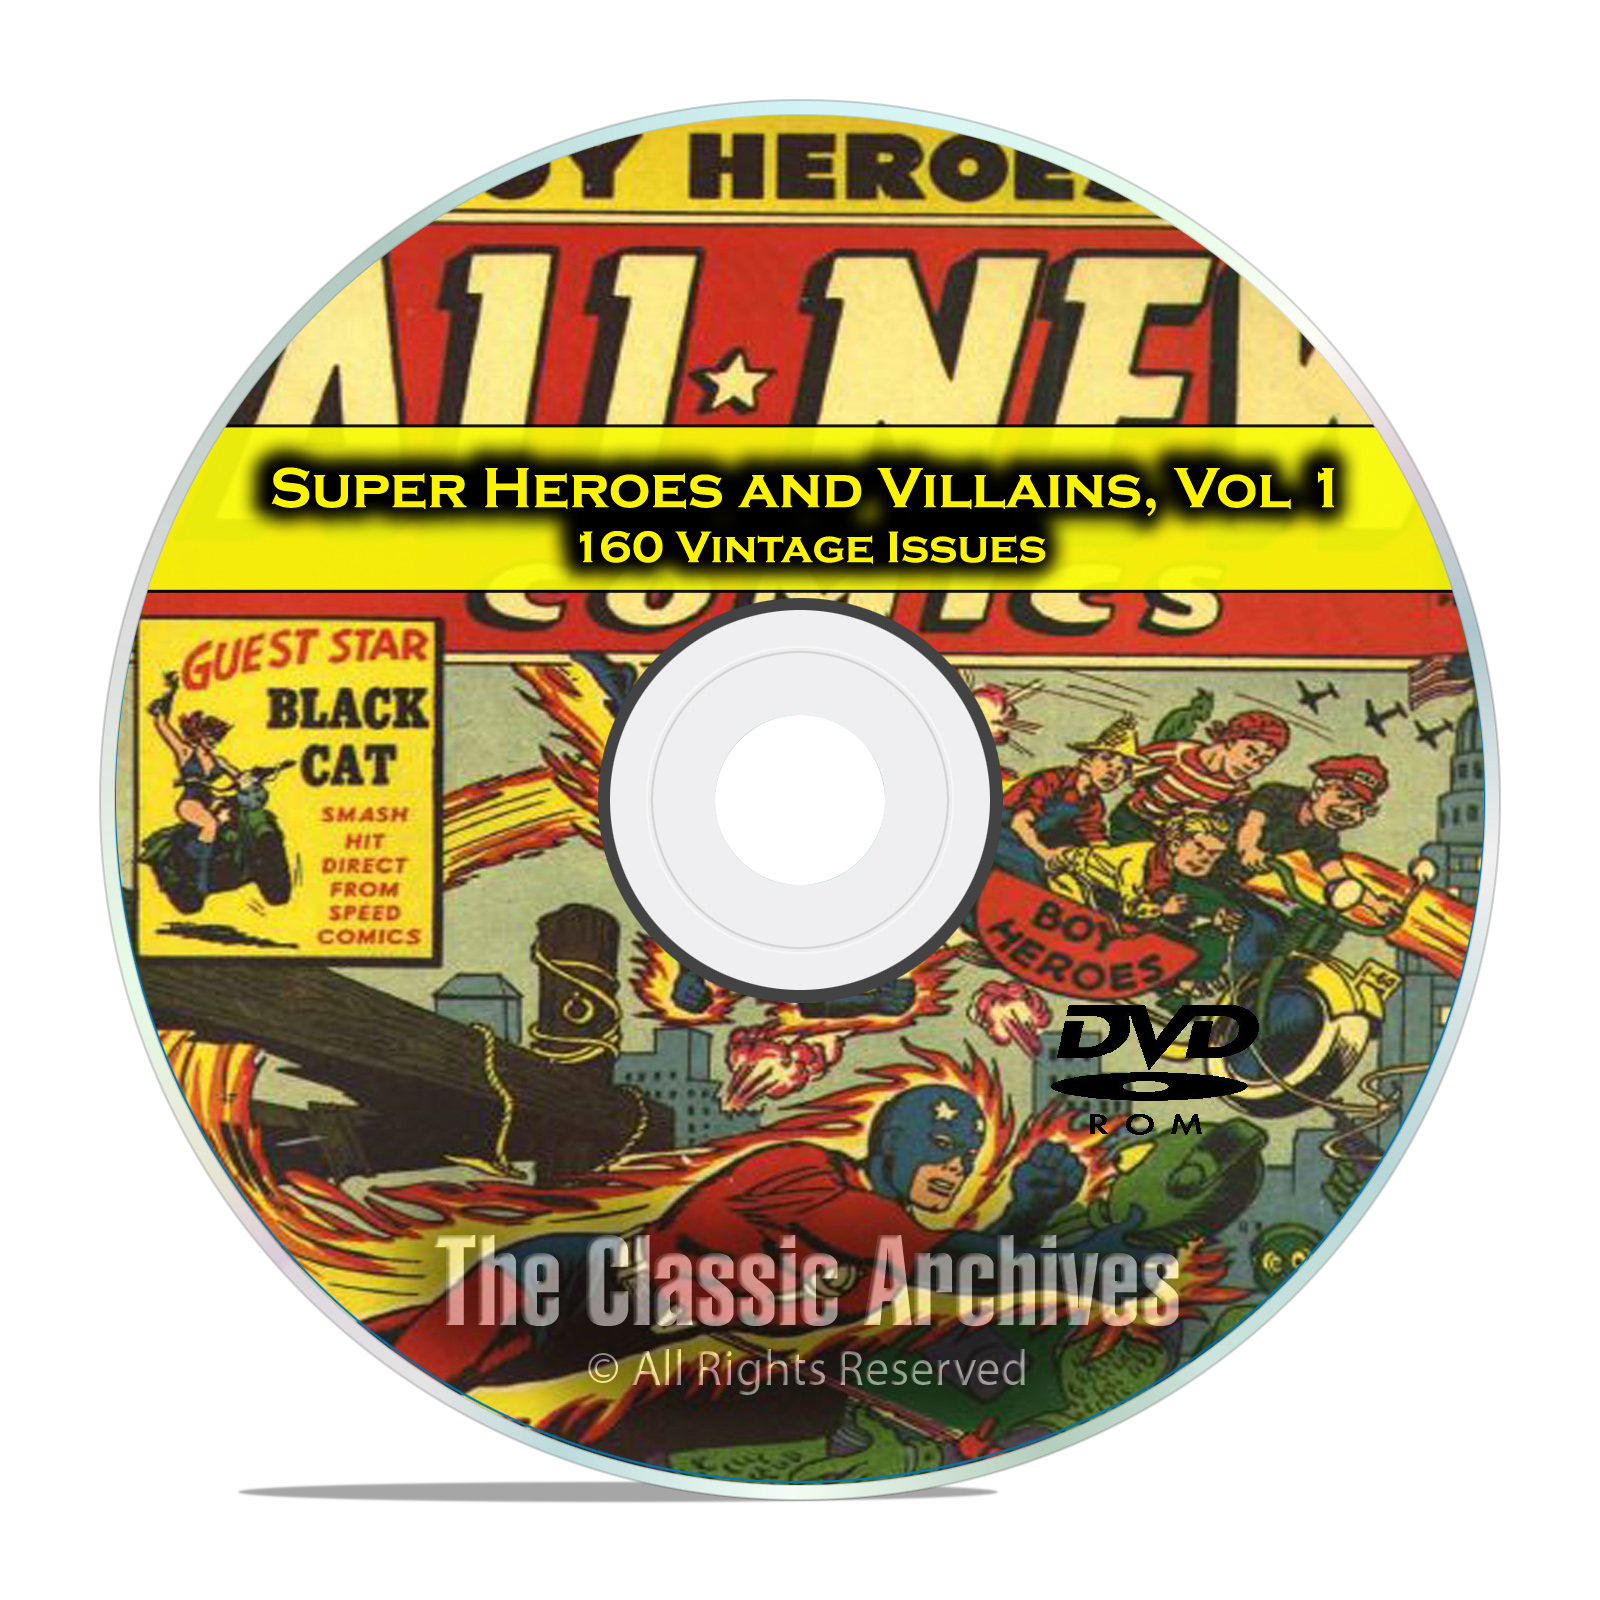 Super Hero, Villains, Vol 1, Black Terror, Exciting, Golden Age Comics DVD